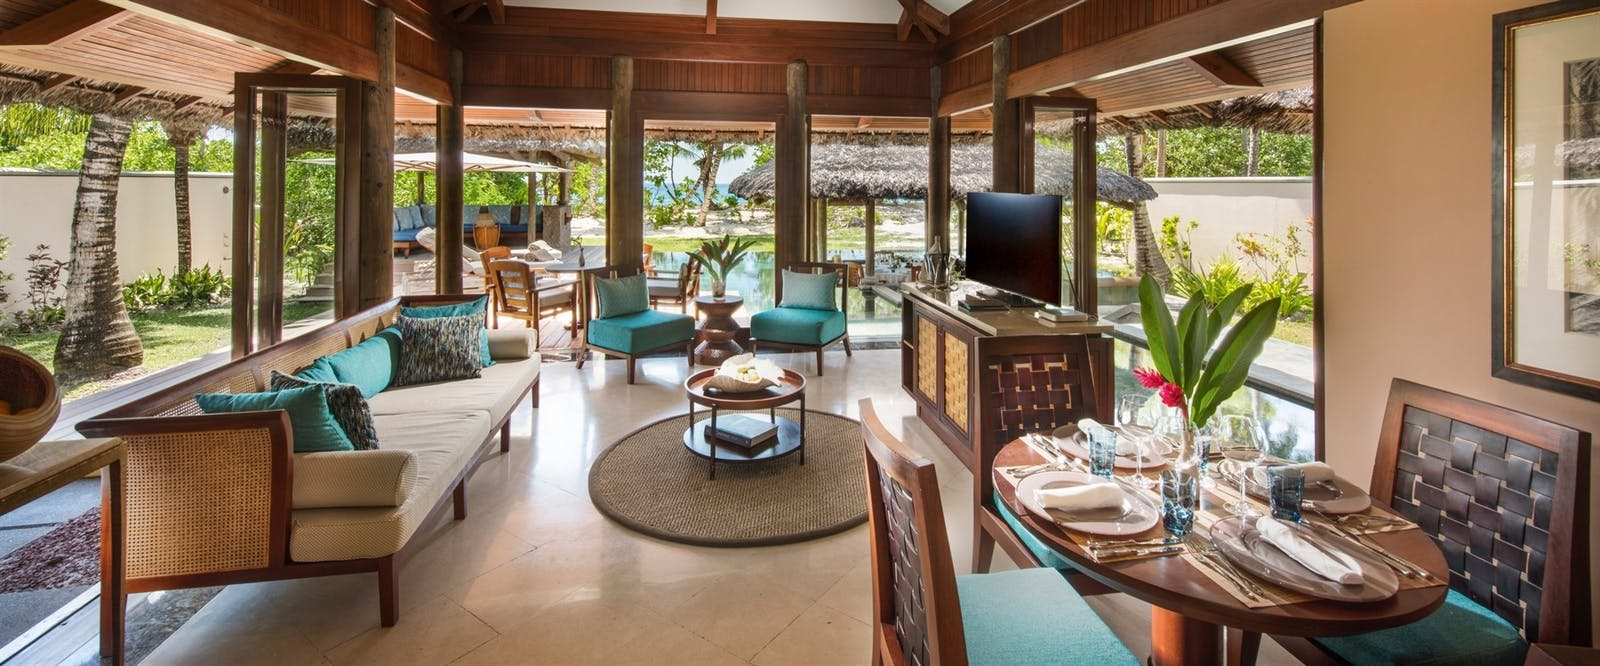 Pool Villa Lounge at Constance Lemuria Resort, Seychelles